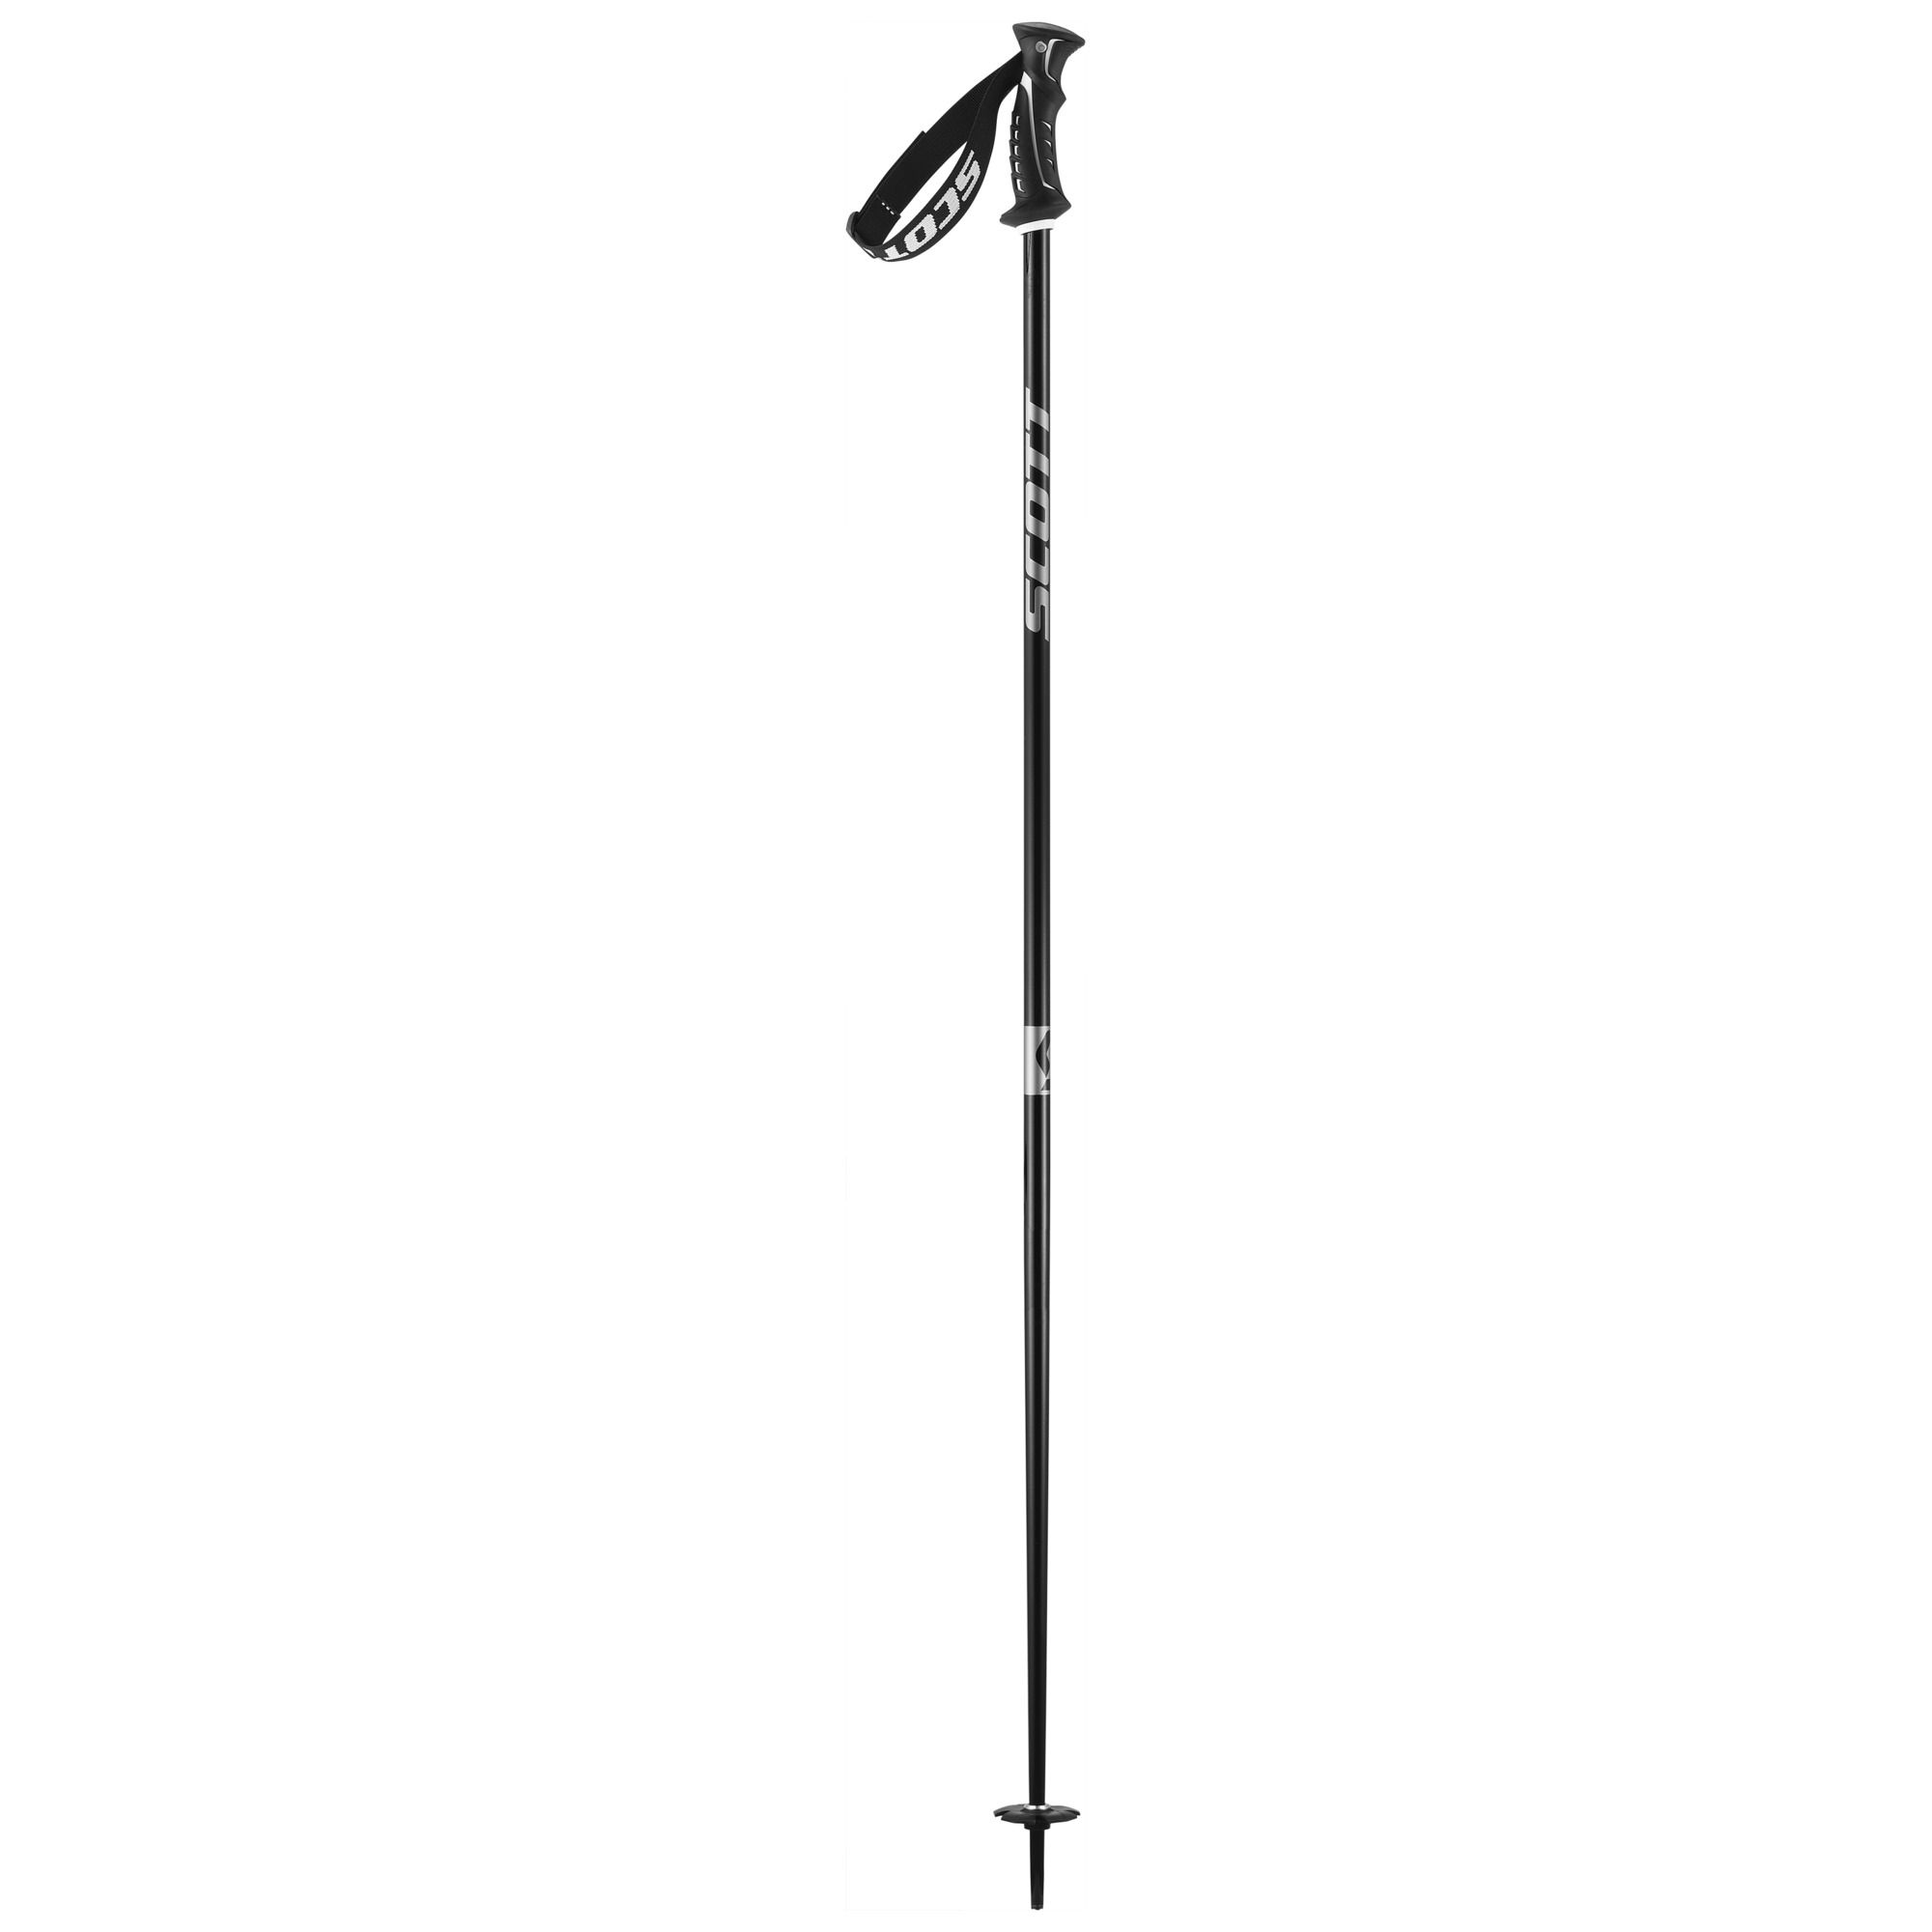 SCOTT Decree Ski Pole